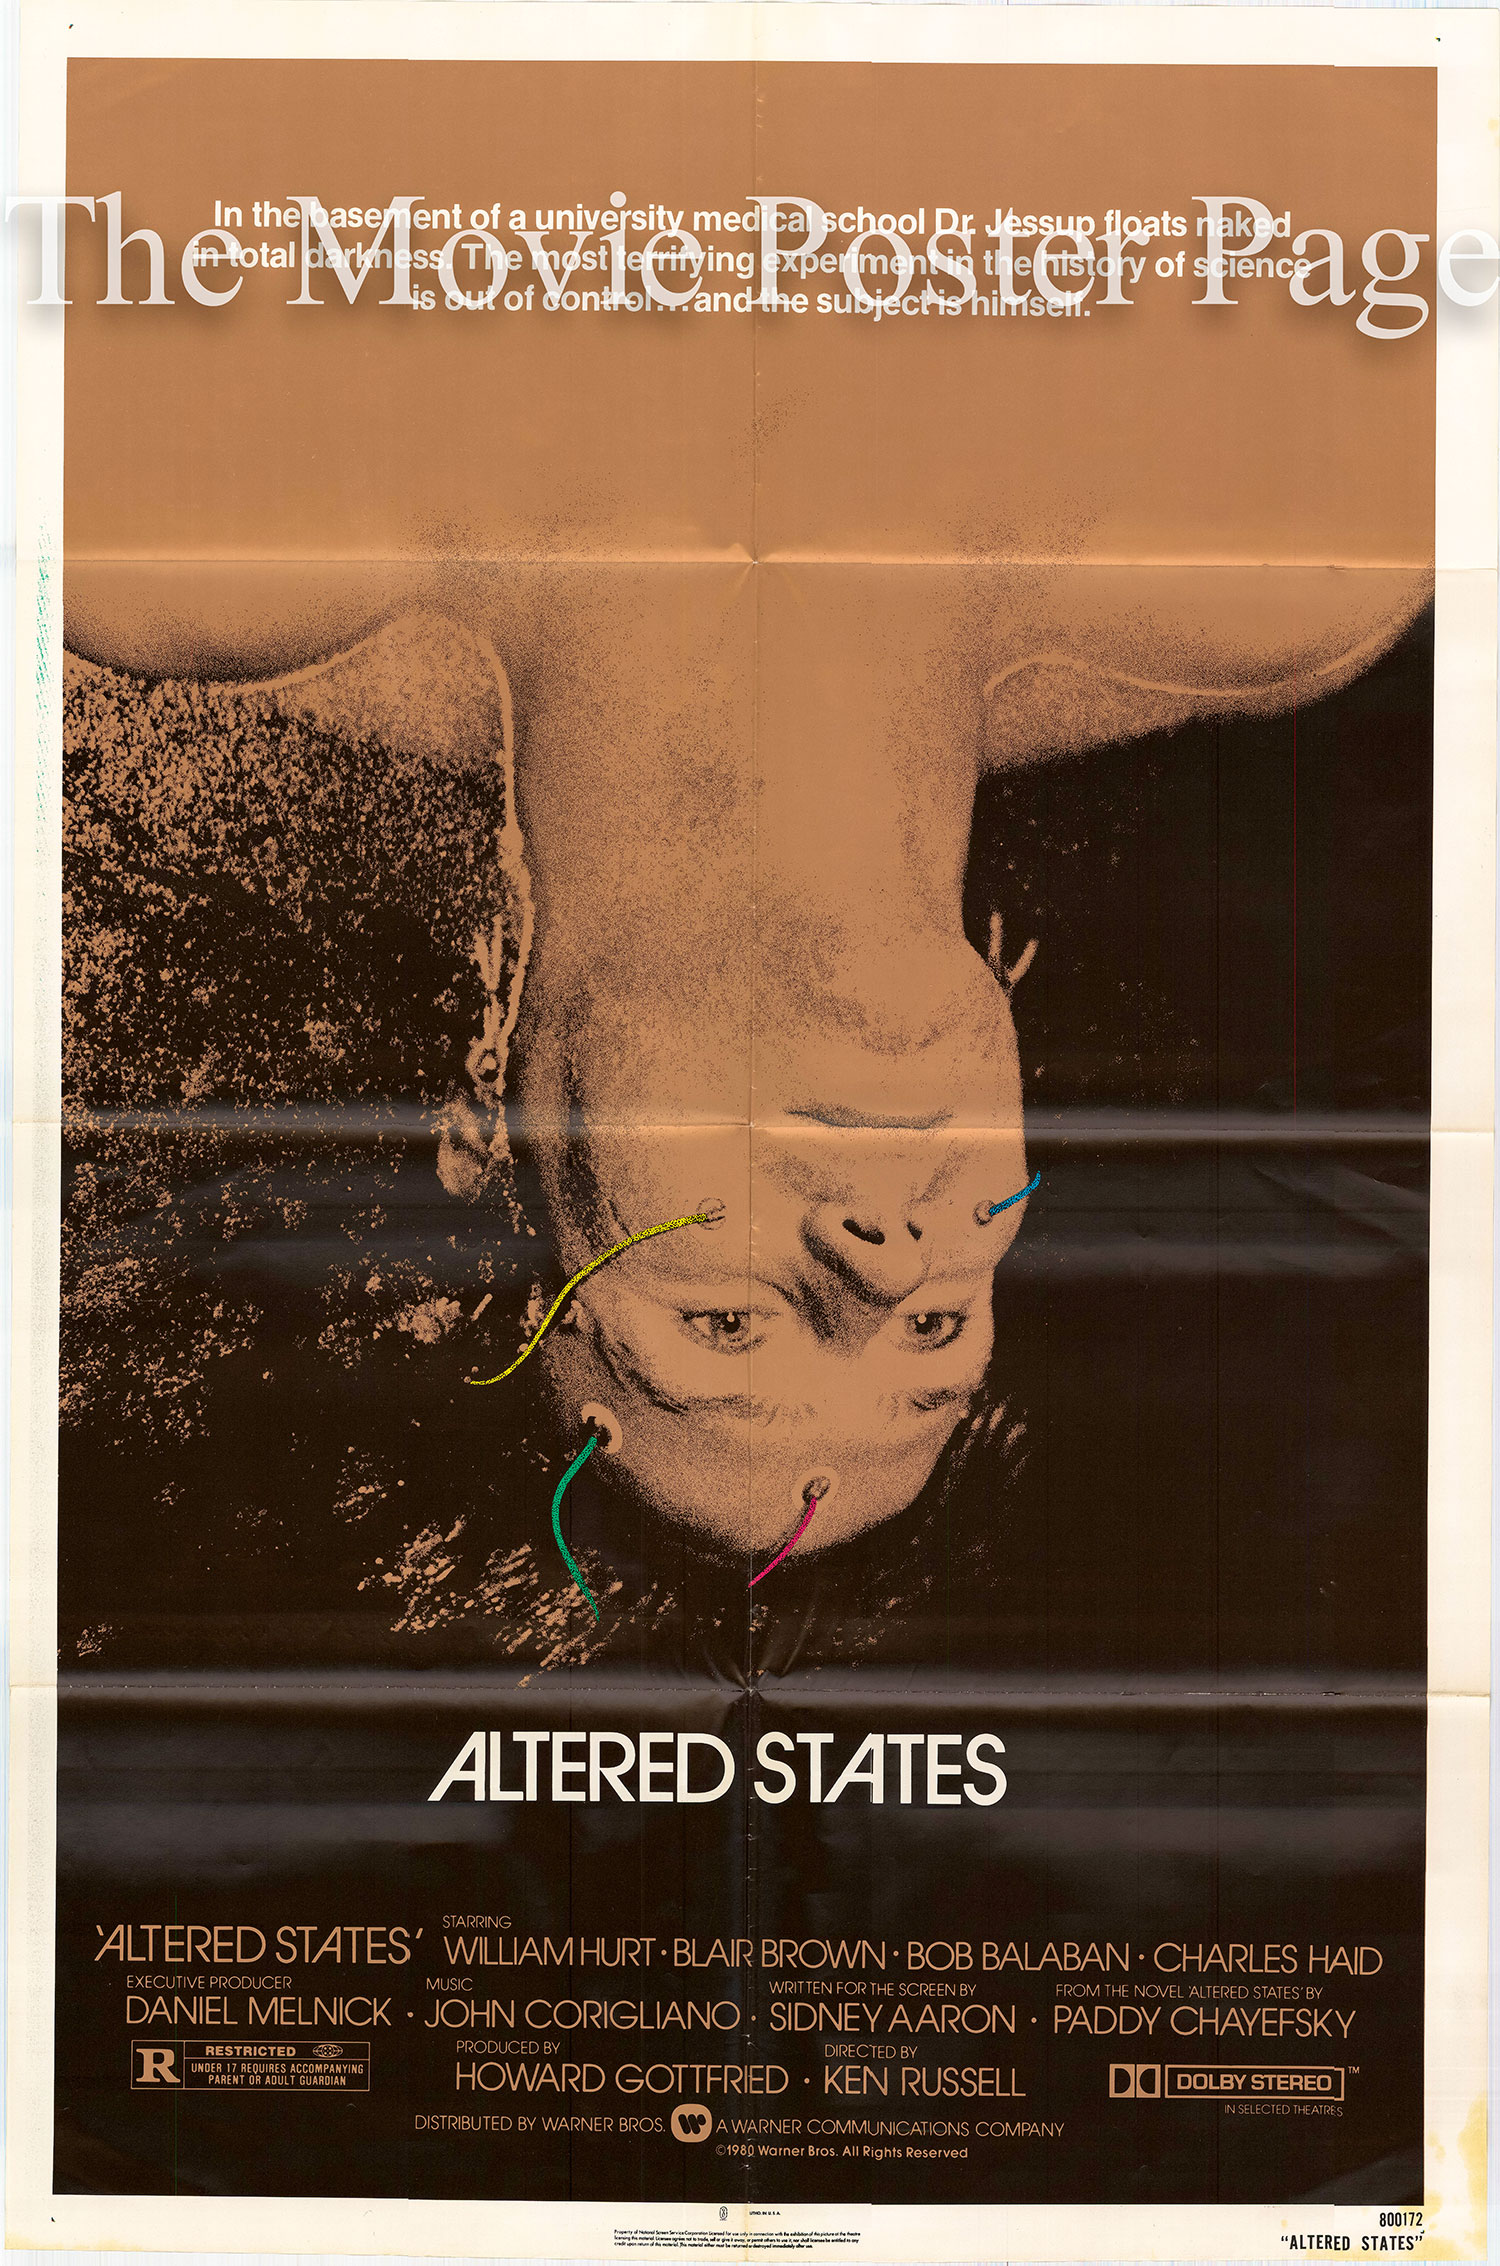 Pictured is a US one-sheet poster for the 1980 Ken Russell film Altered States starring William Hurt.